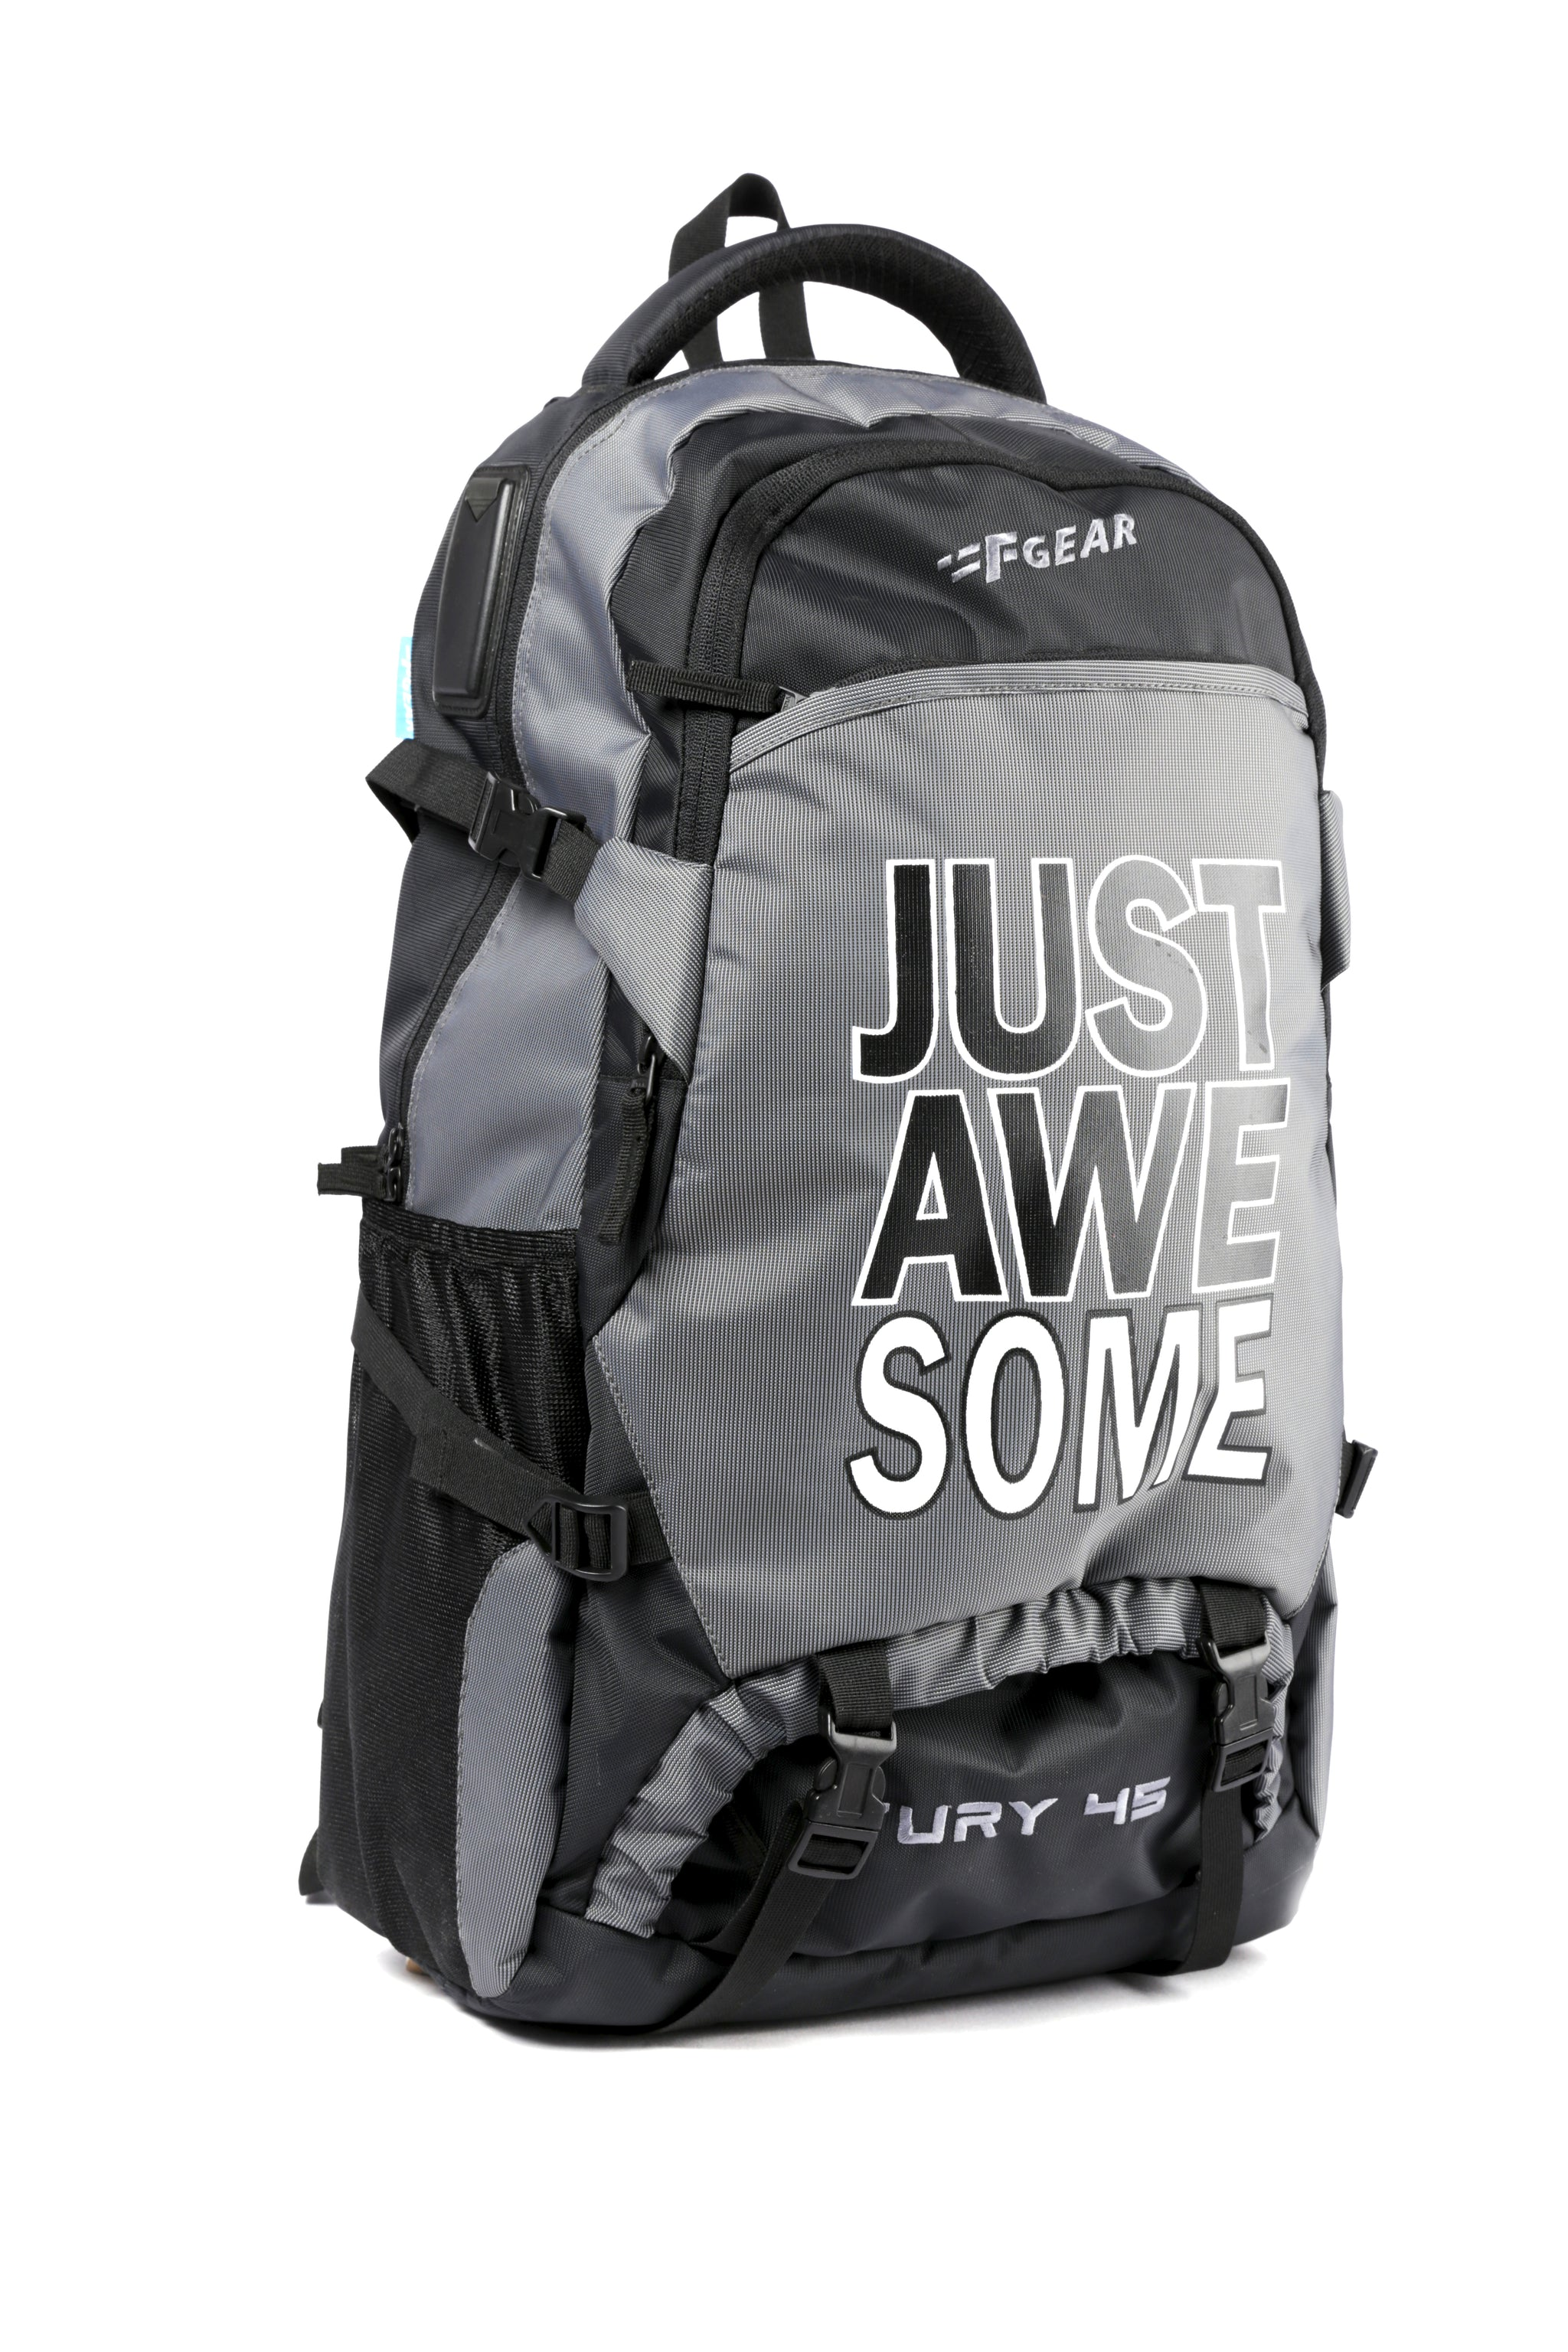 F Gear Fury Polyester 46 Liters Trekking Backpack (Grey, Black)